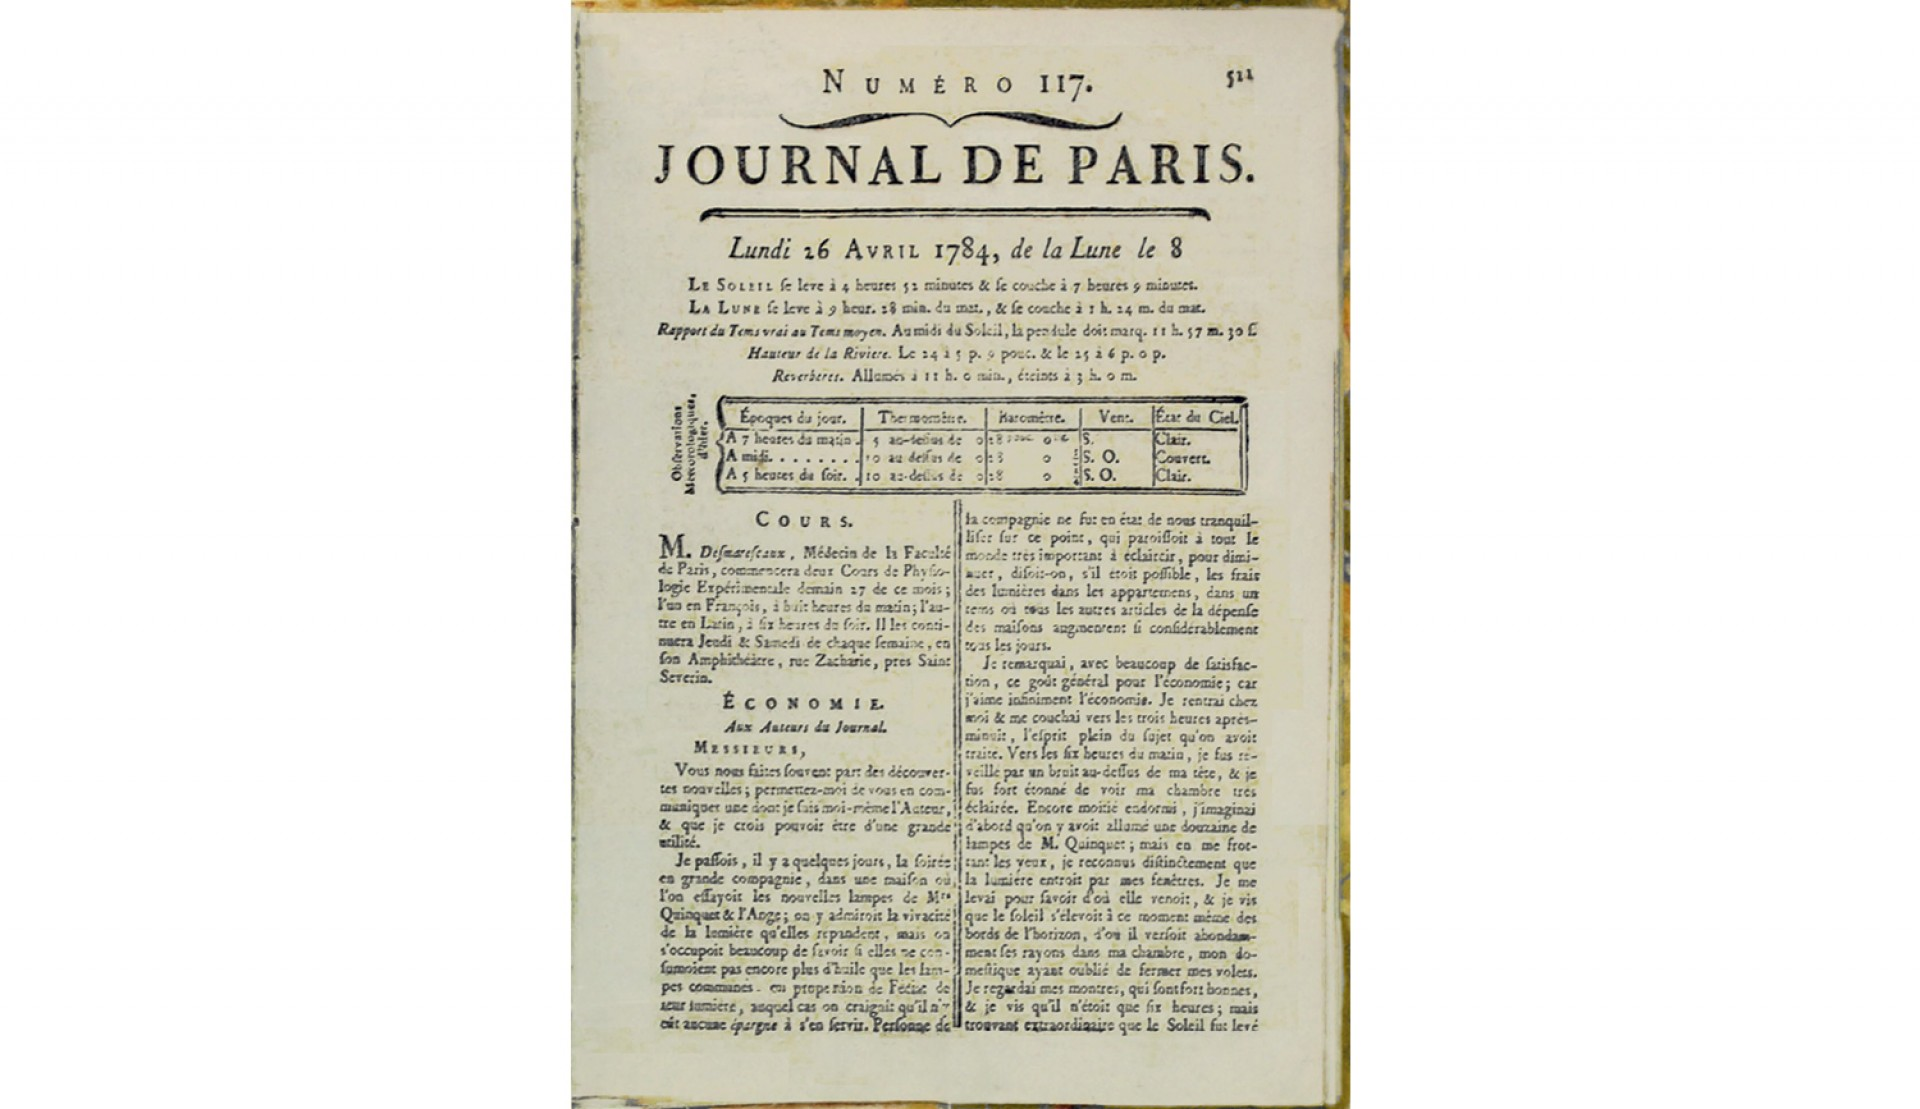 002 General Daylight Savings Time Dst Benjamin Franklin Essay Unbelievable Thesis Statement Conclusion 1920